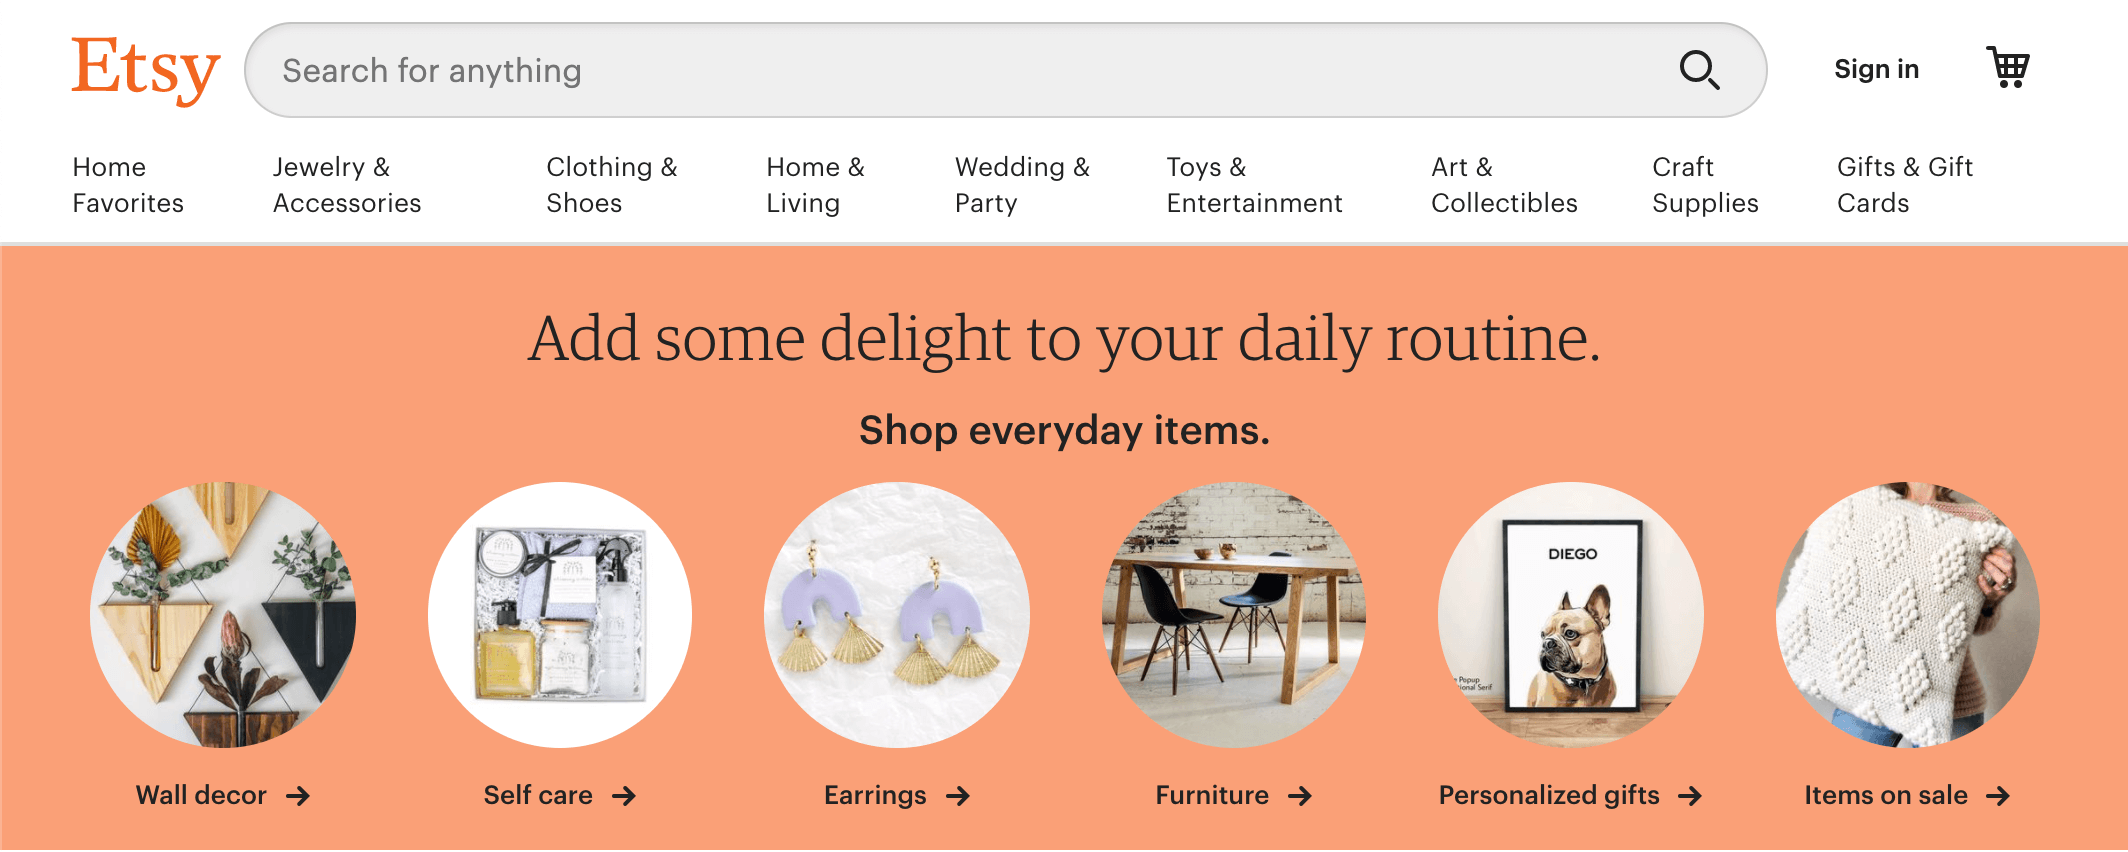 screenshot of etsy website